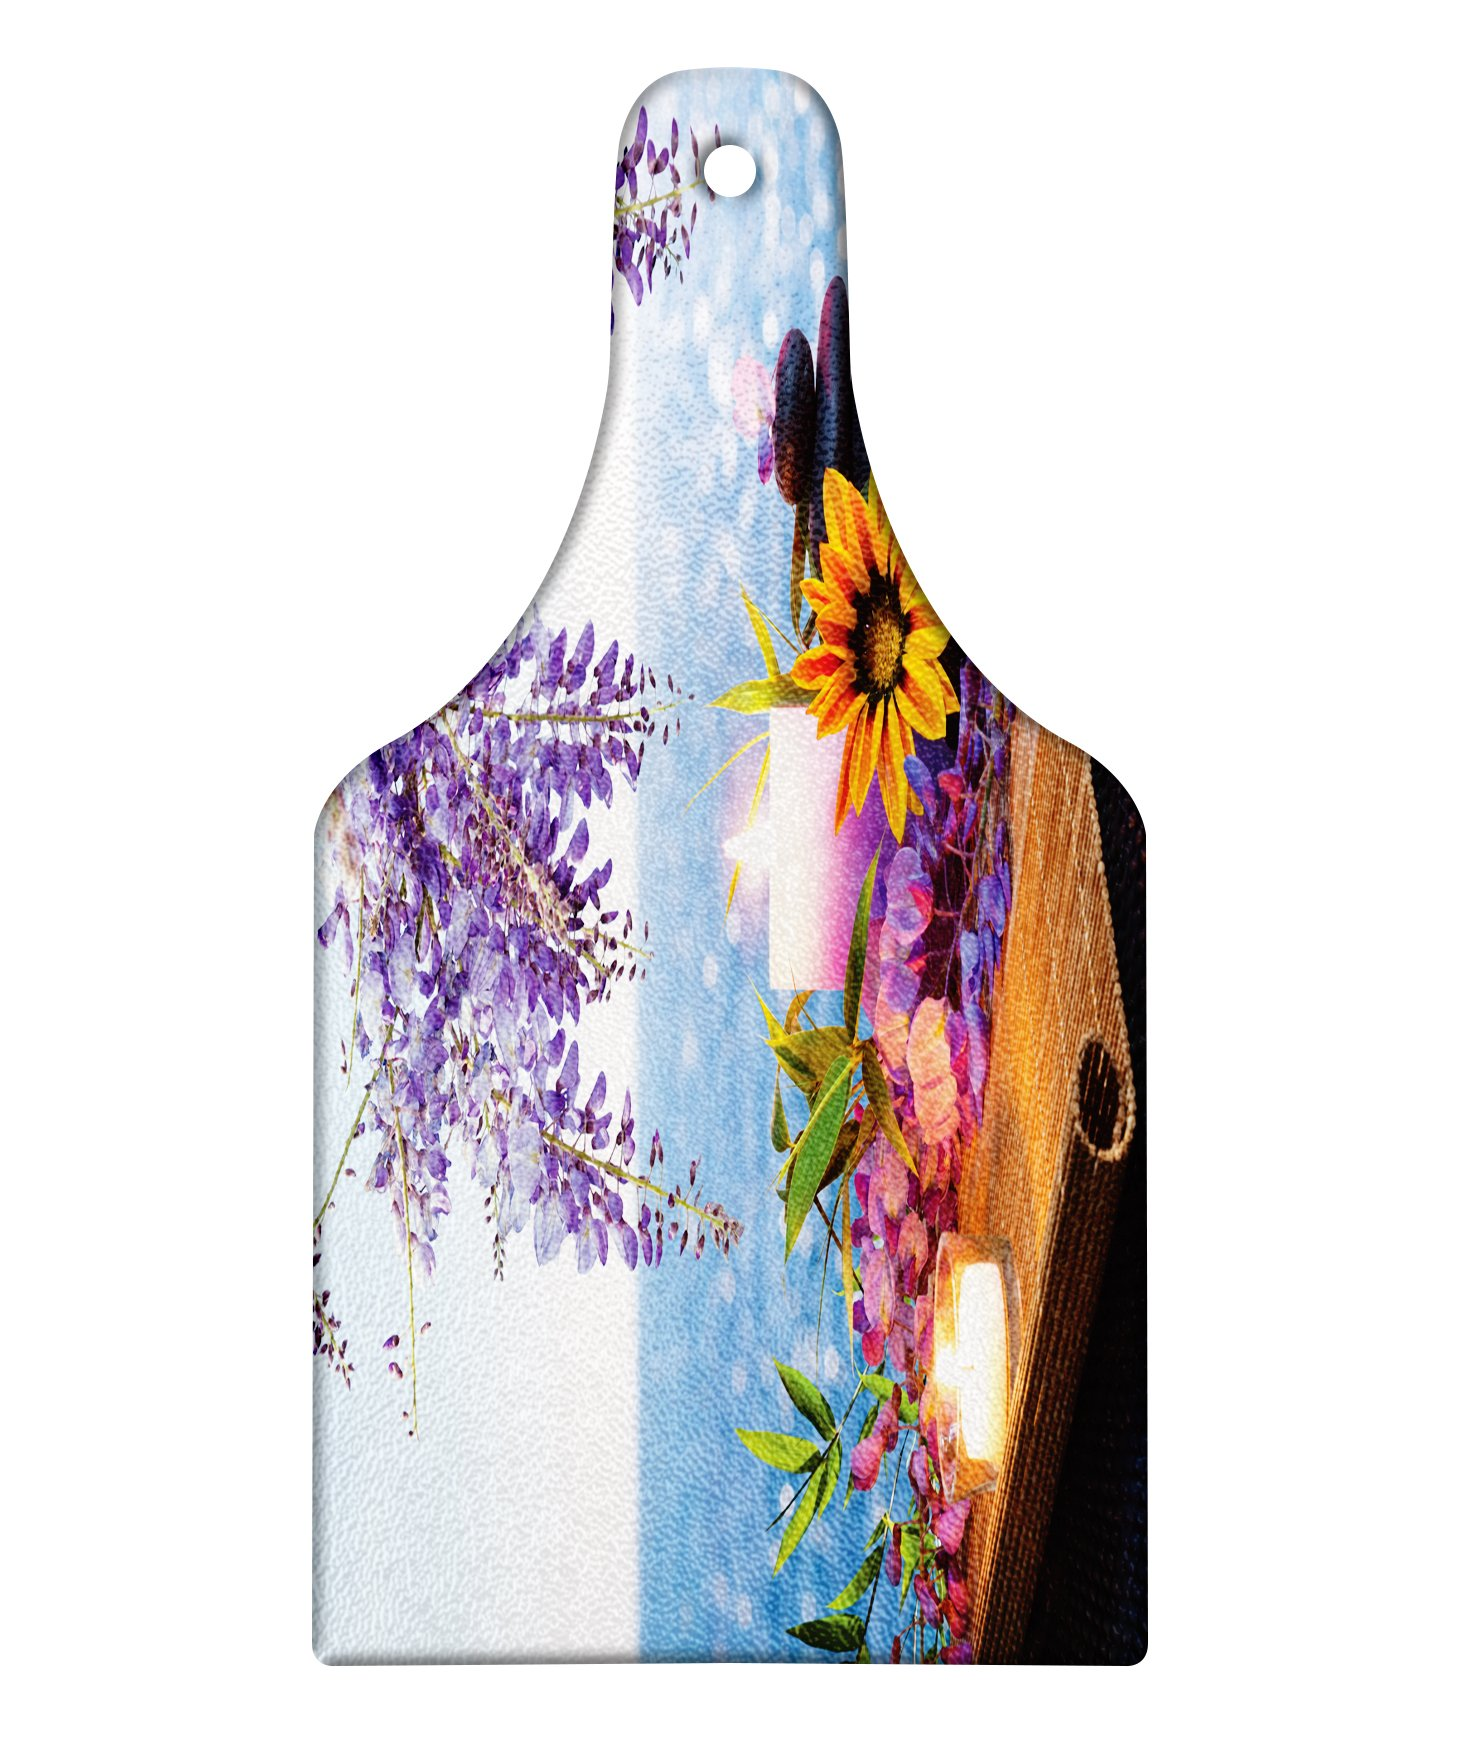 Lunarable Spa Cutting Board, Massage Stones with Daisy and Wisteria with the Seabed Foliage Meditation, Decorative Tempered Glass Cutting and Serving Board, Wine Bottle Shape, Pale Blue Lavander Green